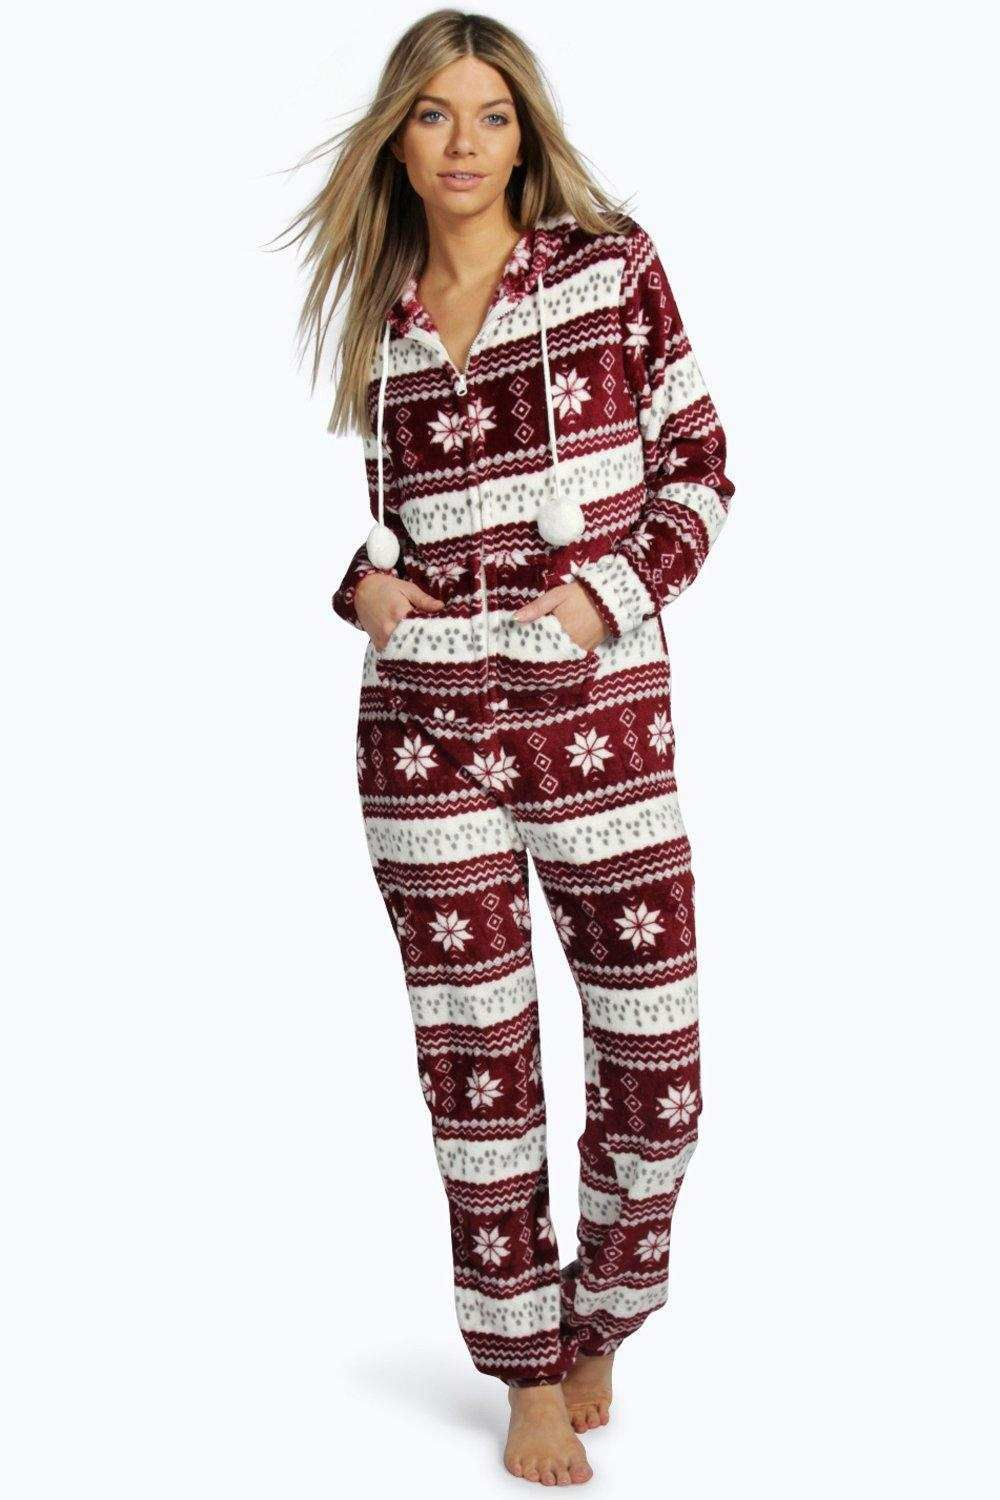 c662a1d3df69 Pin by Candācē on Onesie | Onesies, Boohoo, Womens fashion online